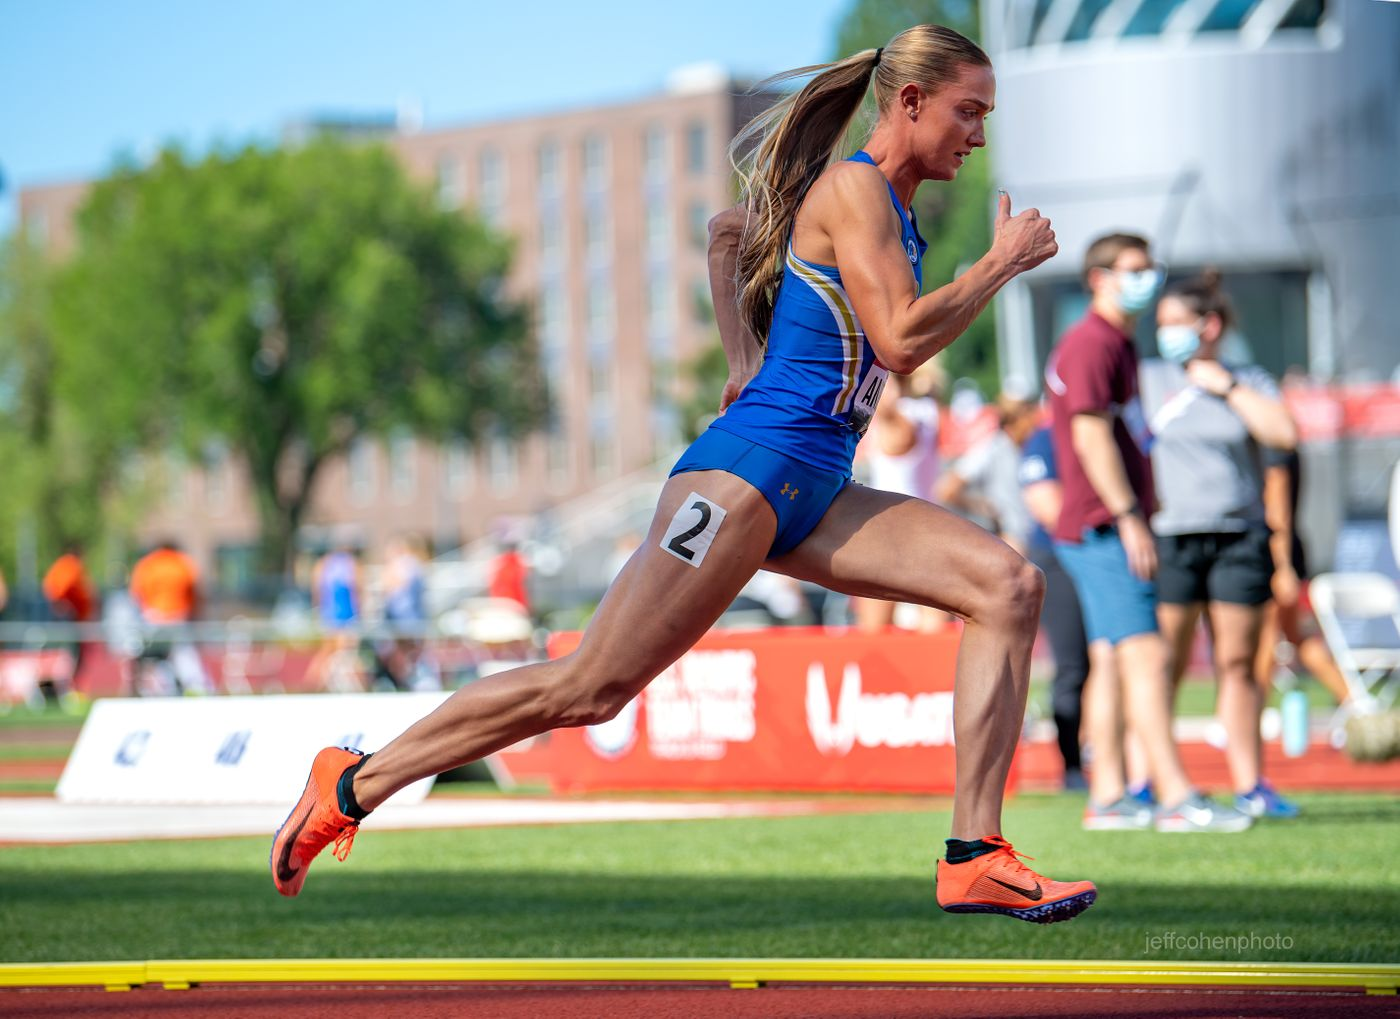 anderson-400w-2021-US-Oly-Trials-day-11138-jeff-cohen-photo--web.jpg